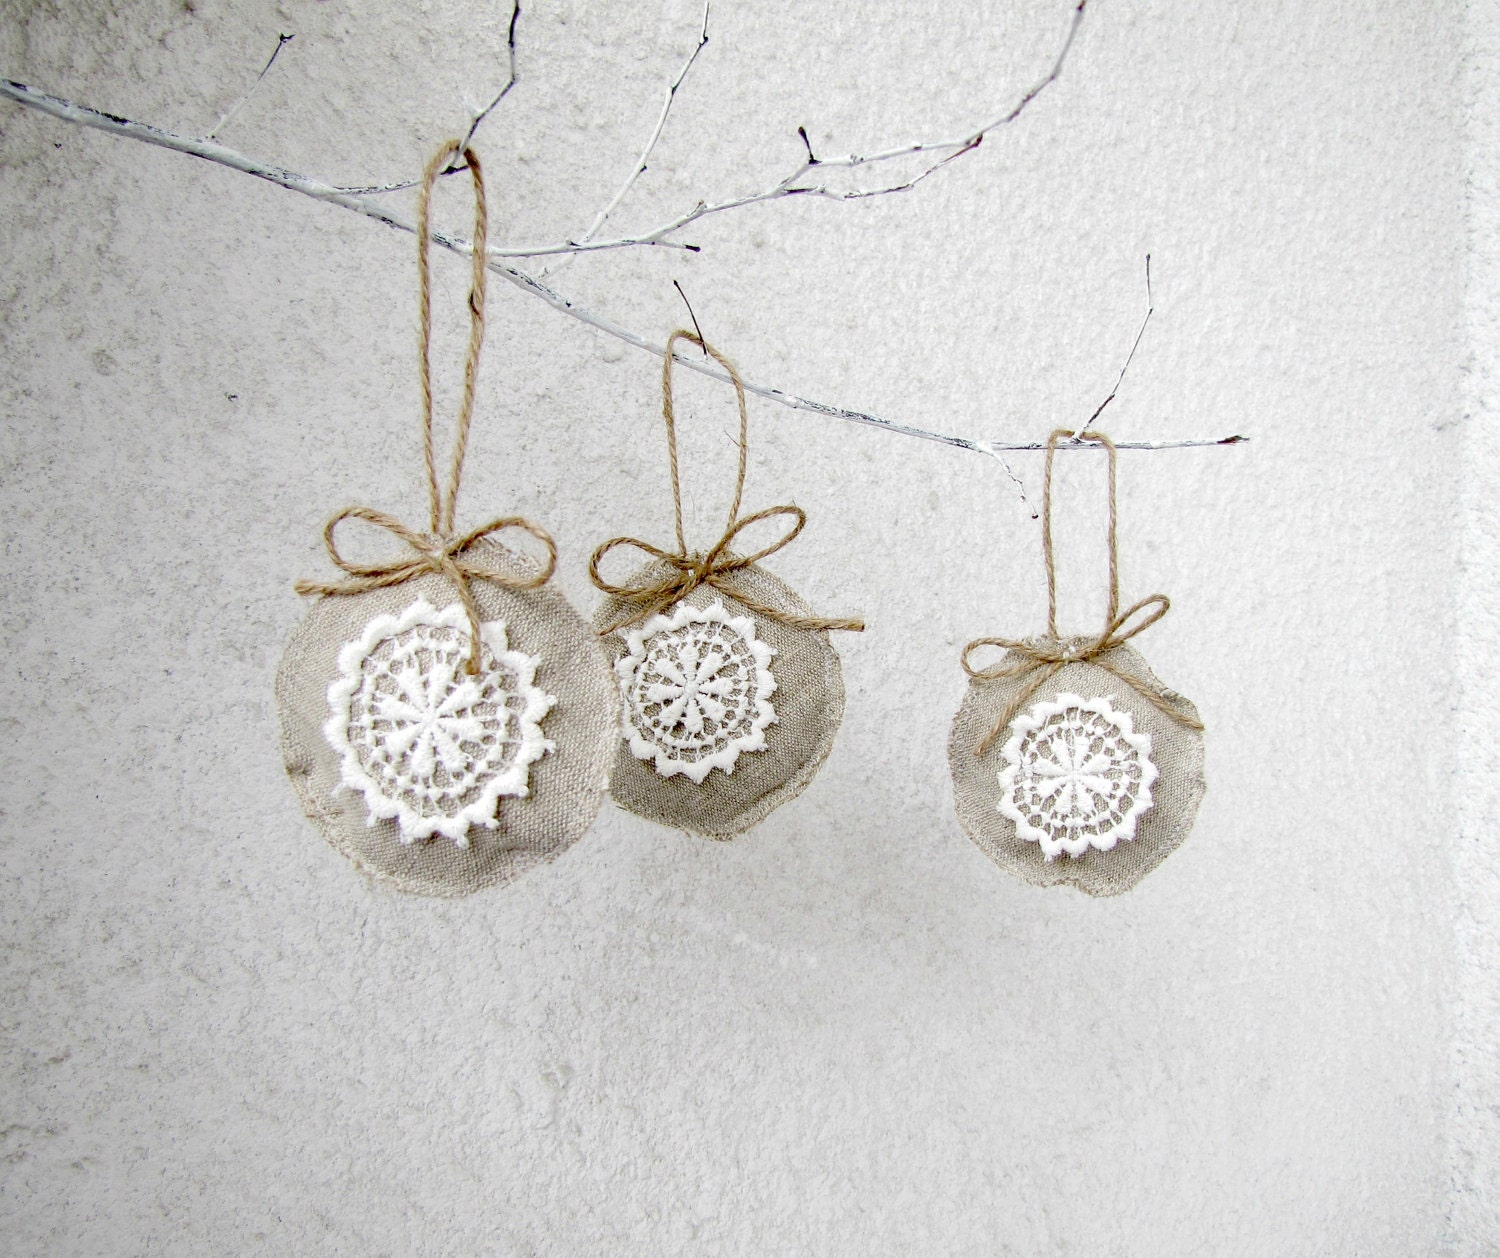 Christmas ornaments linen and lace holiday ornaments shabby - Decorazioni natalizie stile shabby chic ...